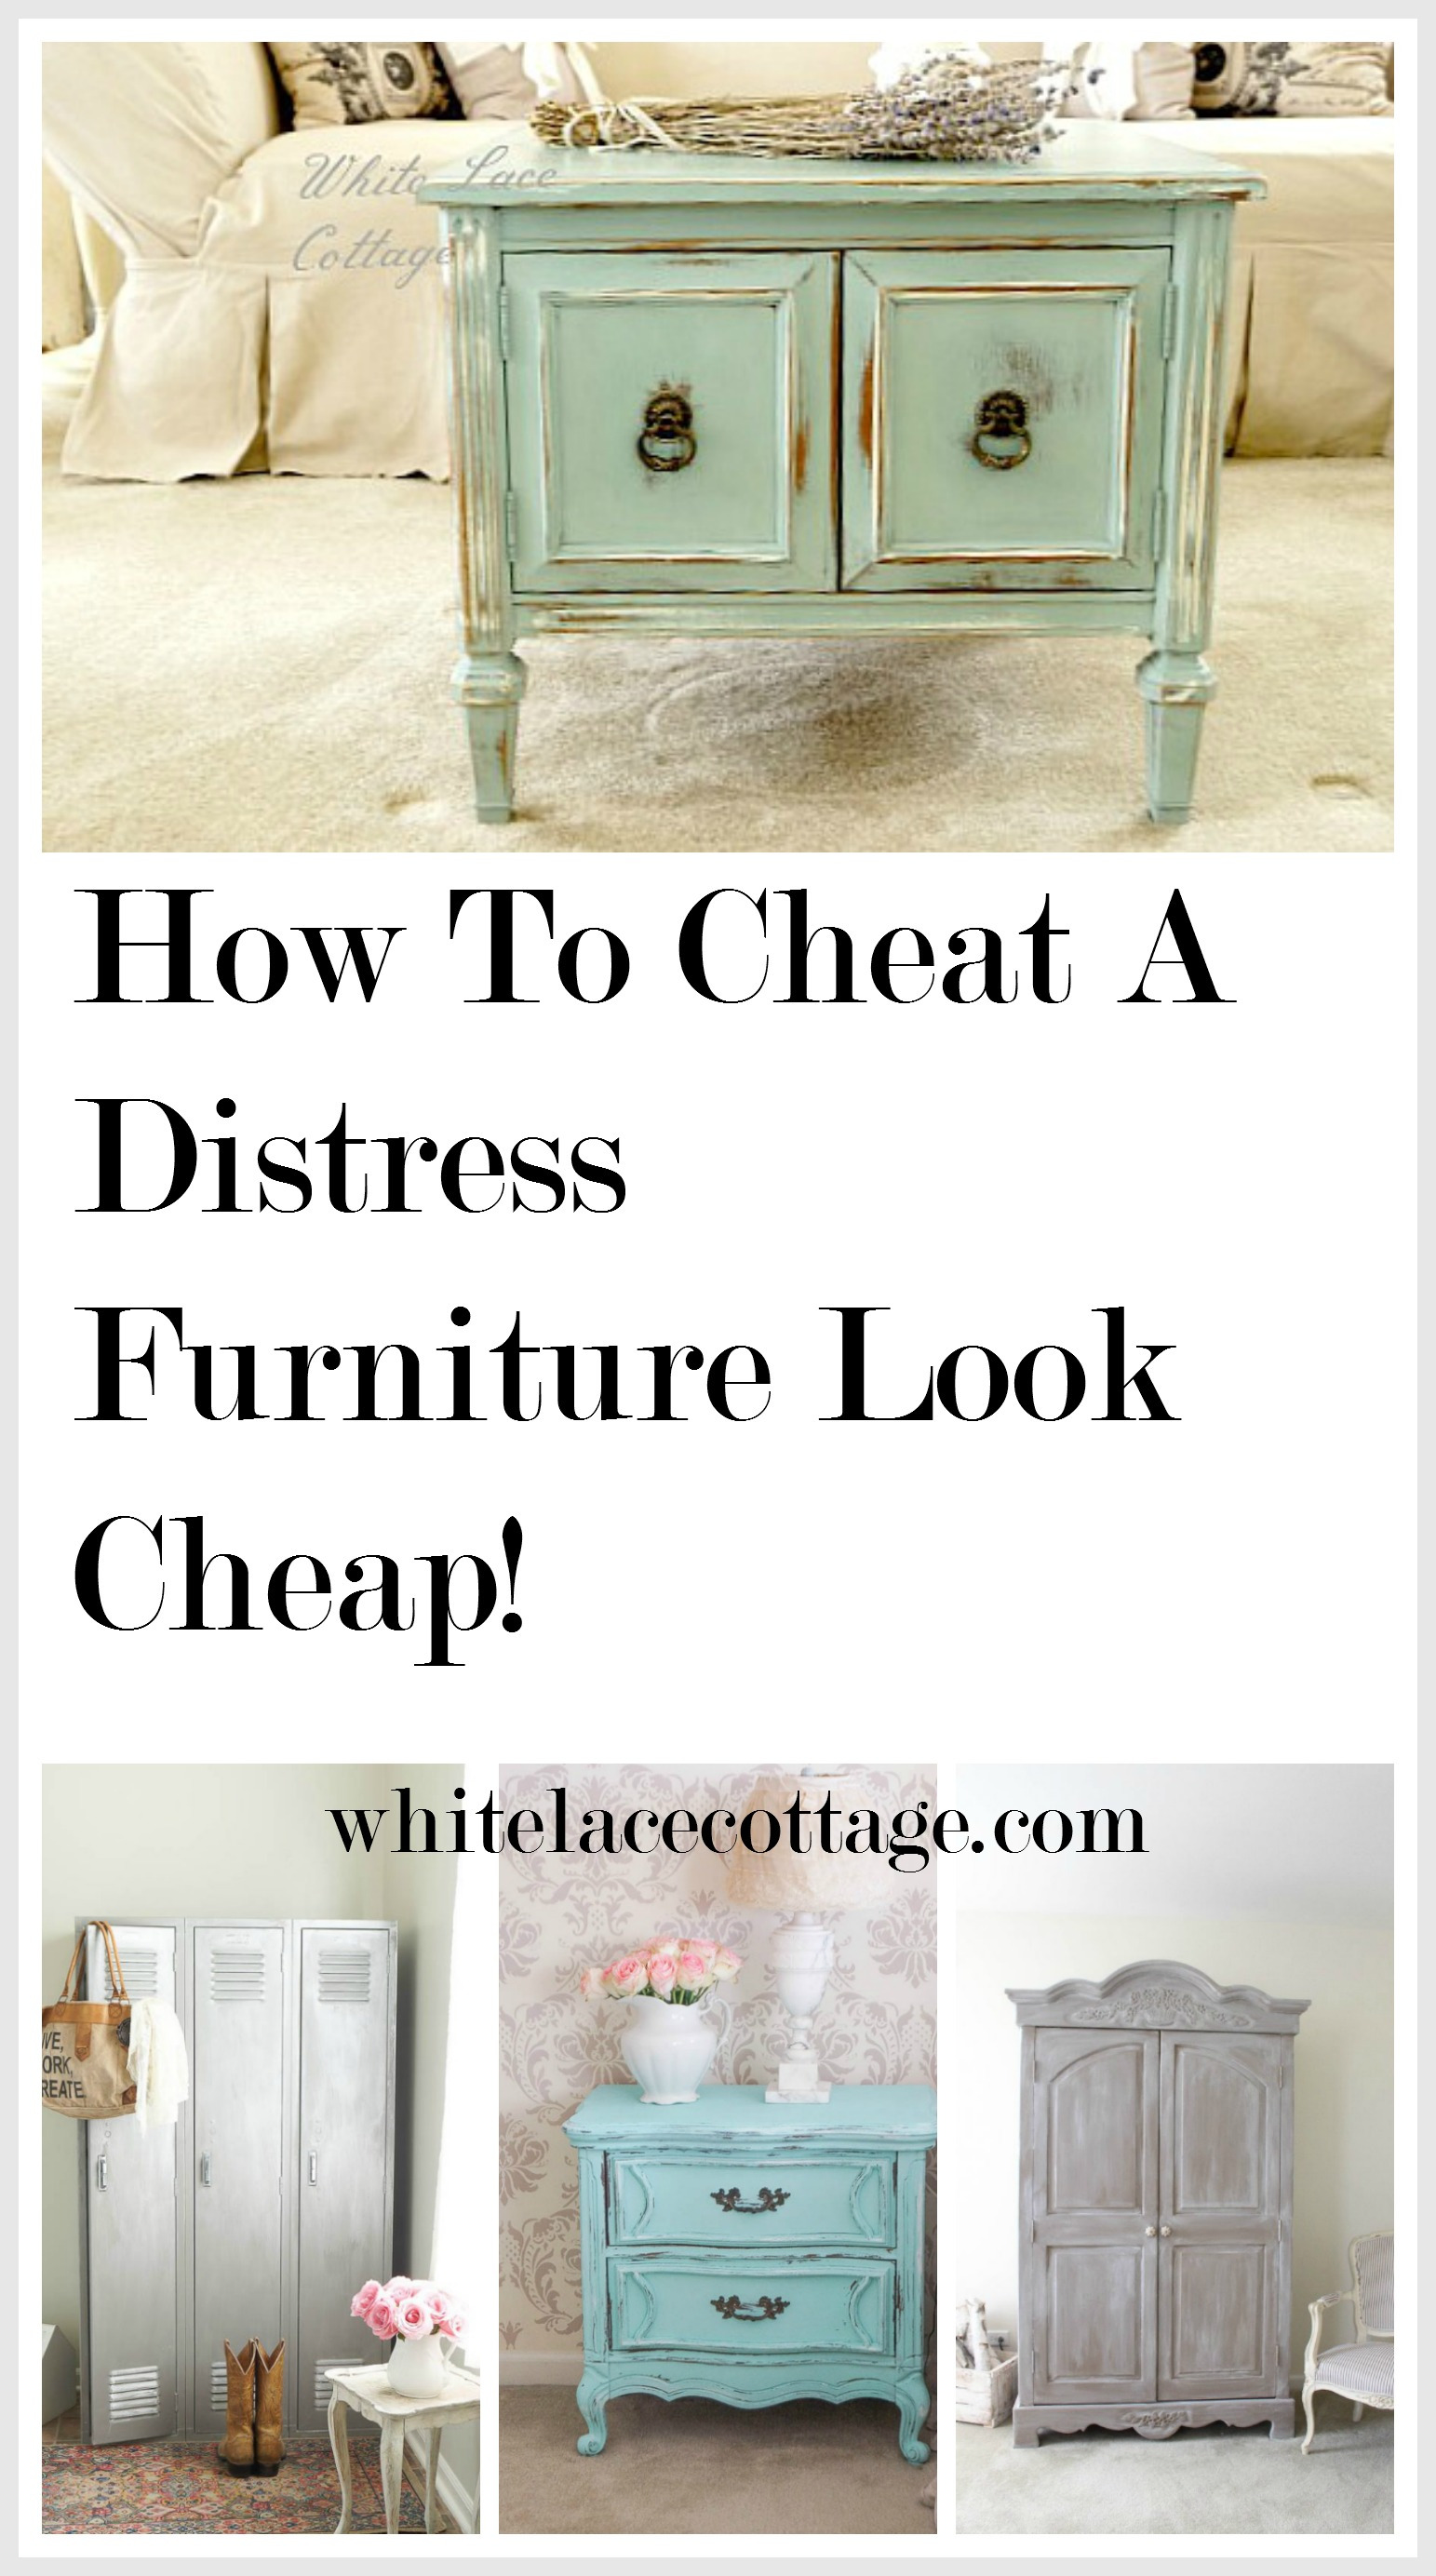 Cheap Antique Looking Furniture Lovely How to Cheat A Distress Furniture Look Cheap Anne P